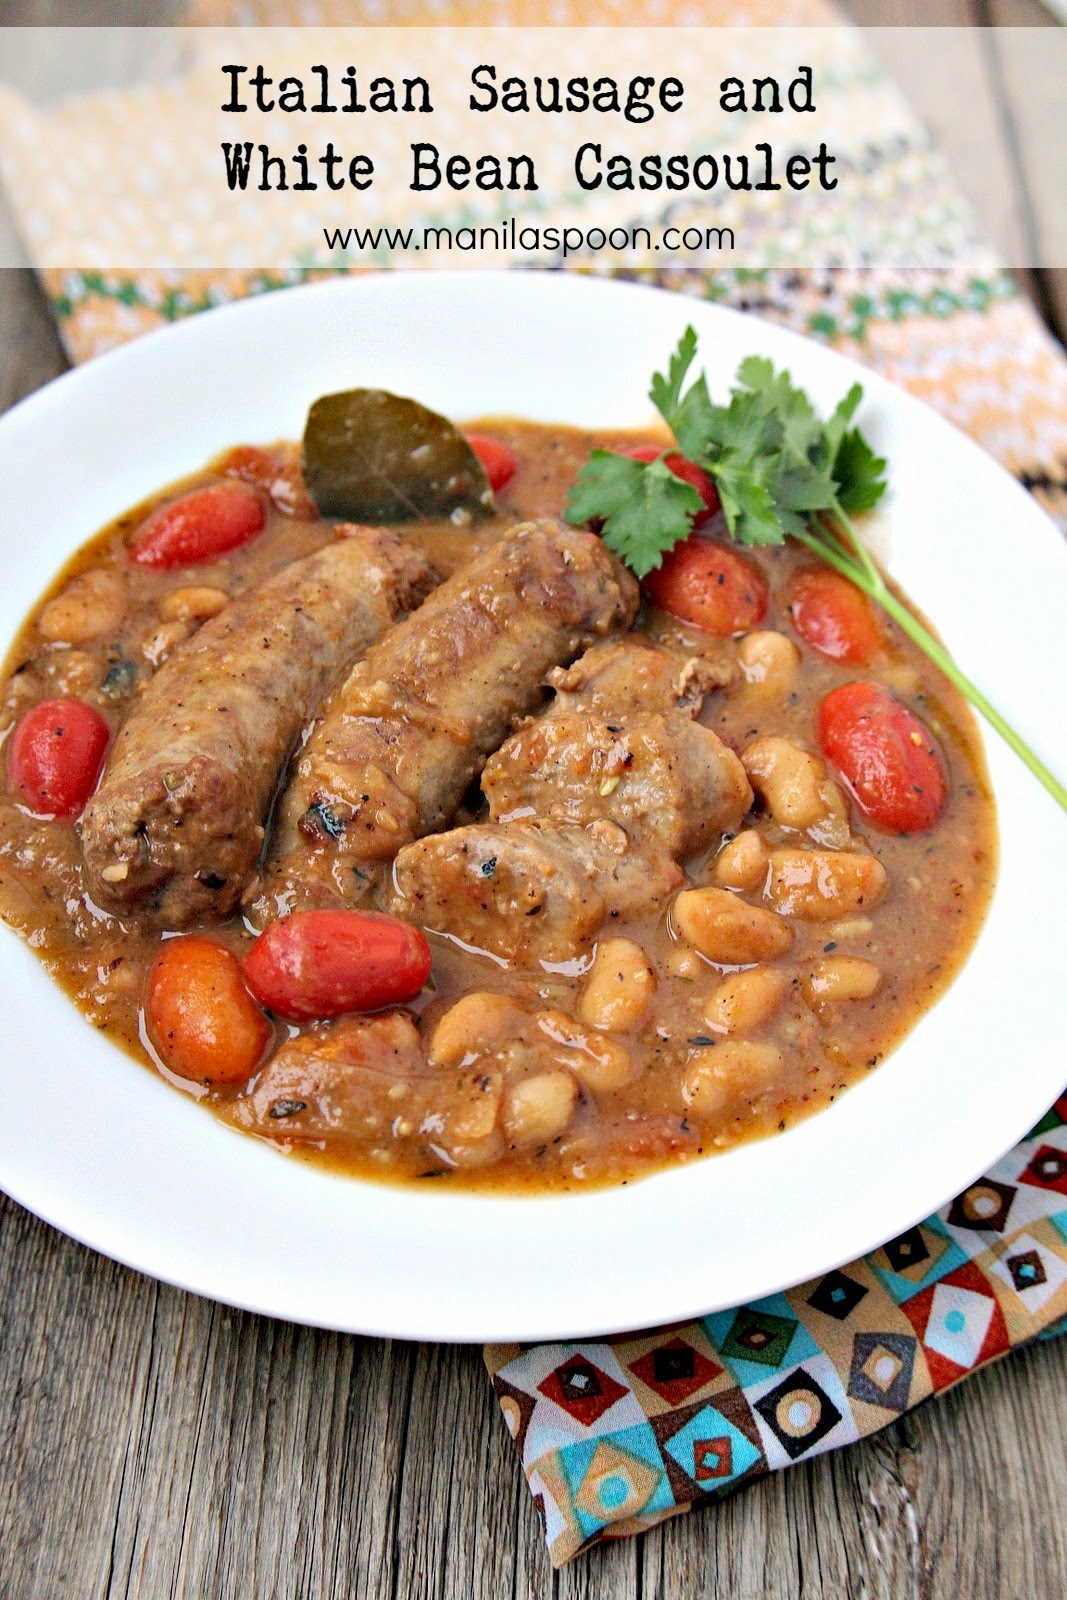 Loads of Italian sausages, tomatoes, herbs and white beans give full flavor to this hearty and delicious stew - Italian Sausage and White Bean Cassoulet! Fall and winter-perfect stew.